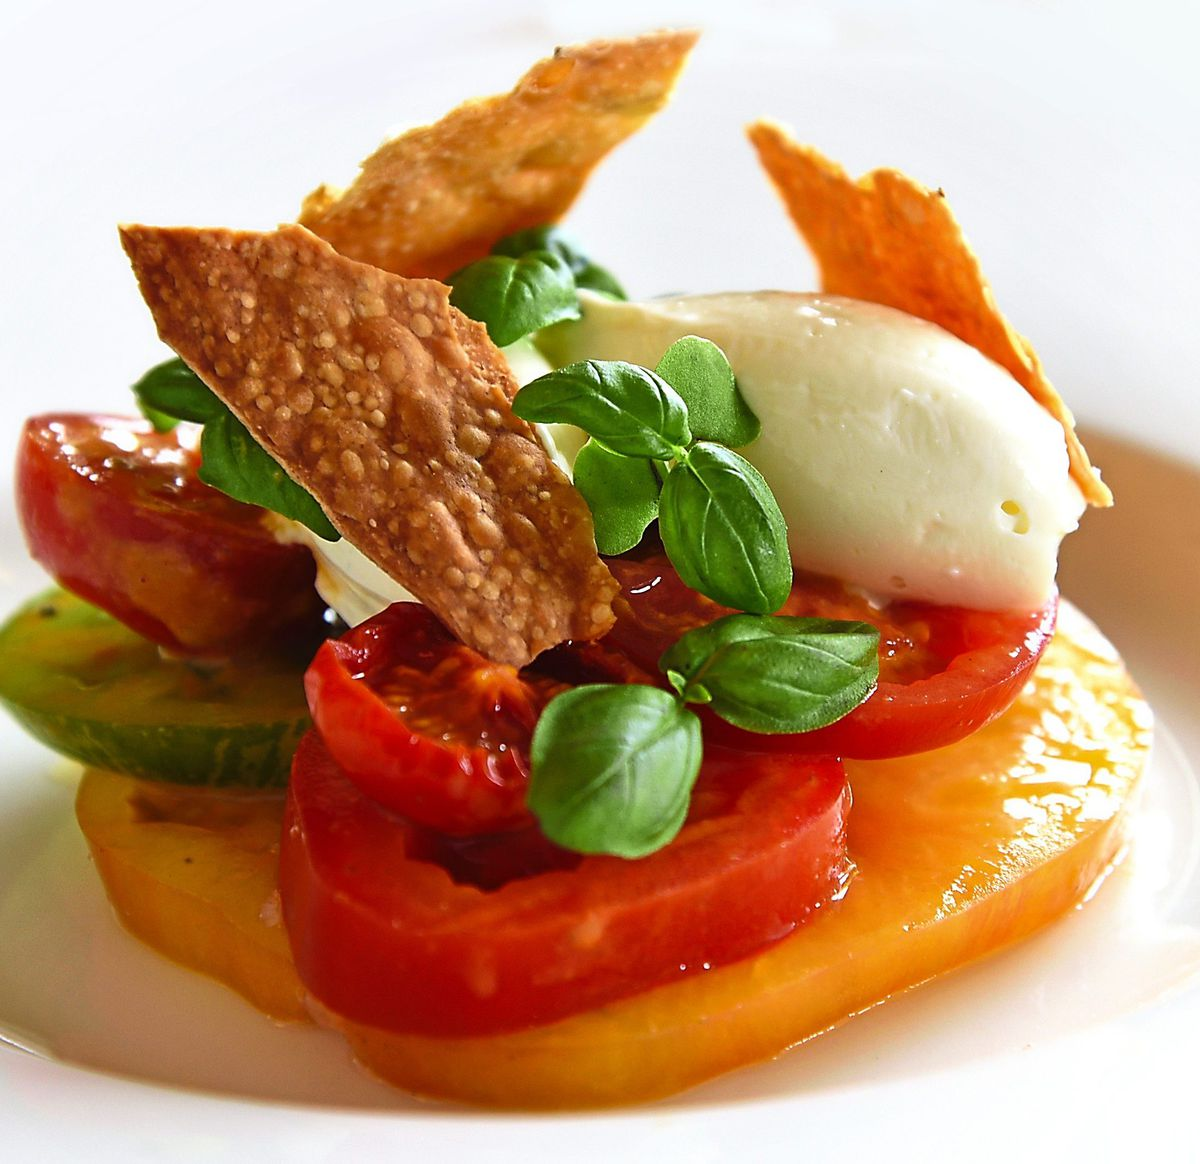 Fresh flavours – the tomato salad dish